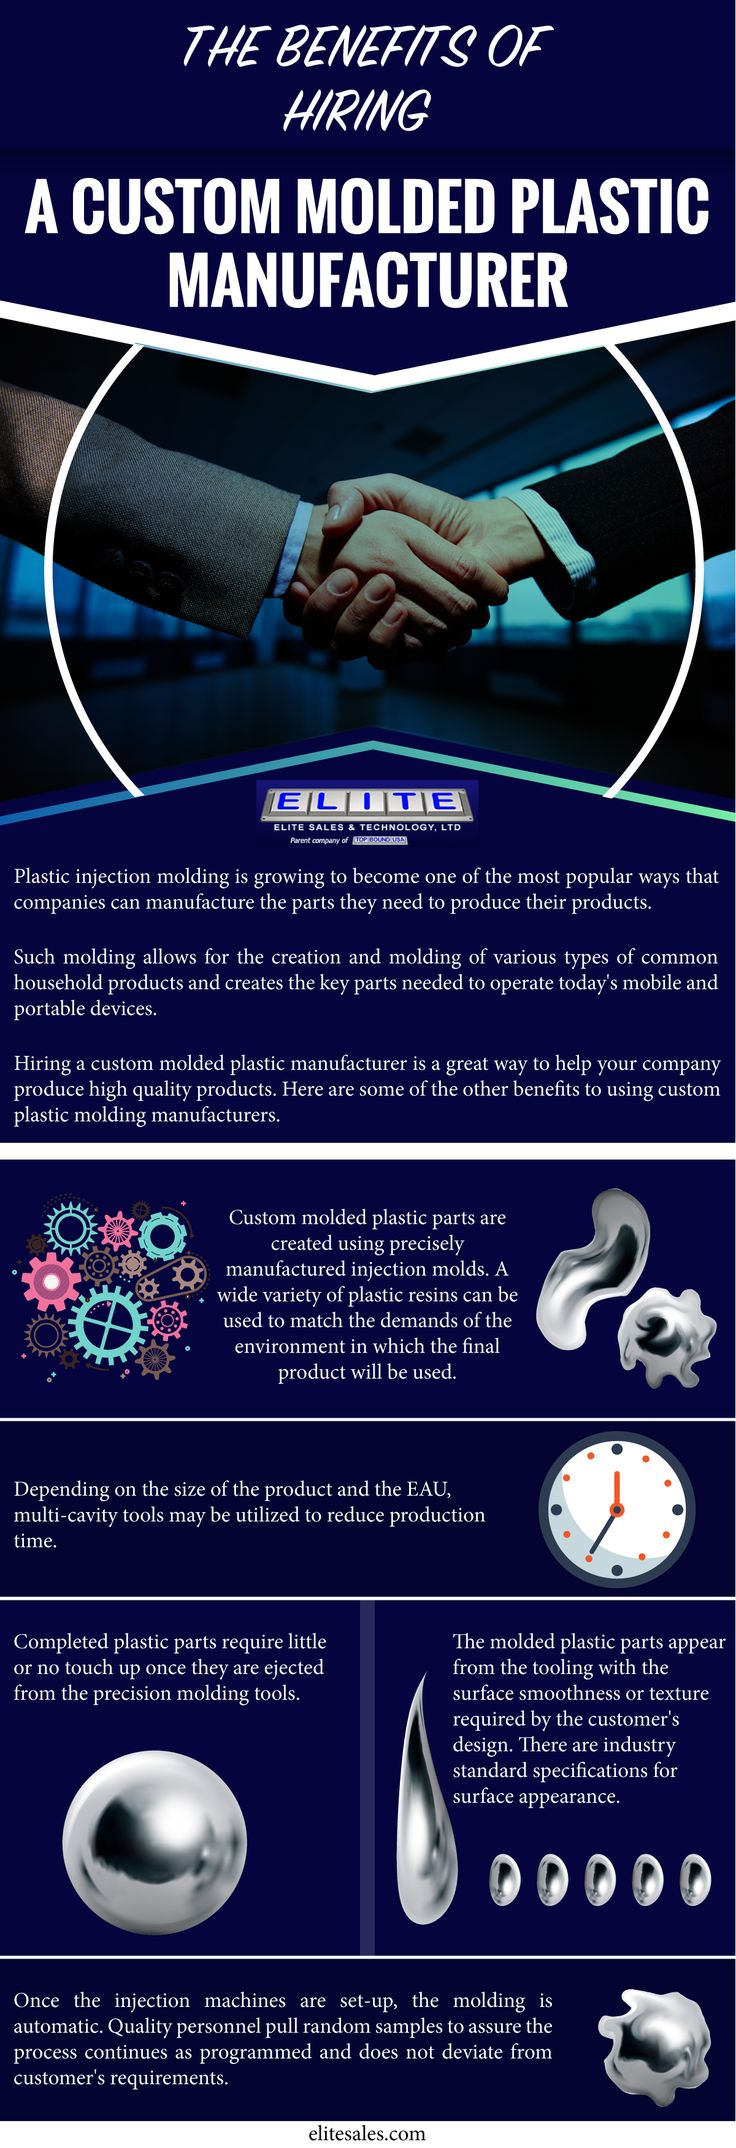 If you're looking for the best way to lower your manufacturing and product costs, the best solution for you is to hire a custom molded plastic manufacturer. These manufacturing facilities and experts are capable of making your plastic products cost effective and labor efficient.